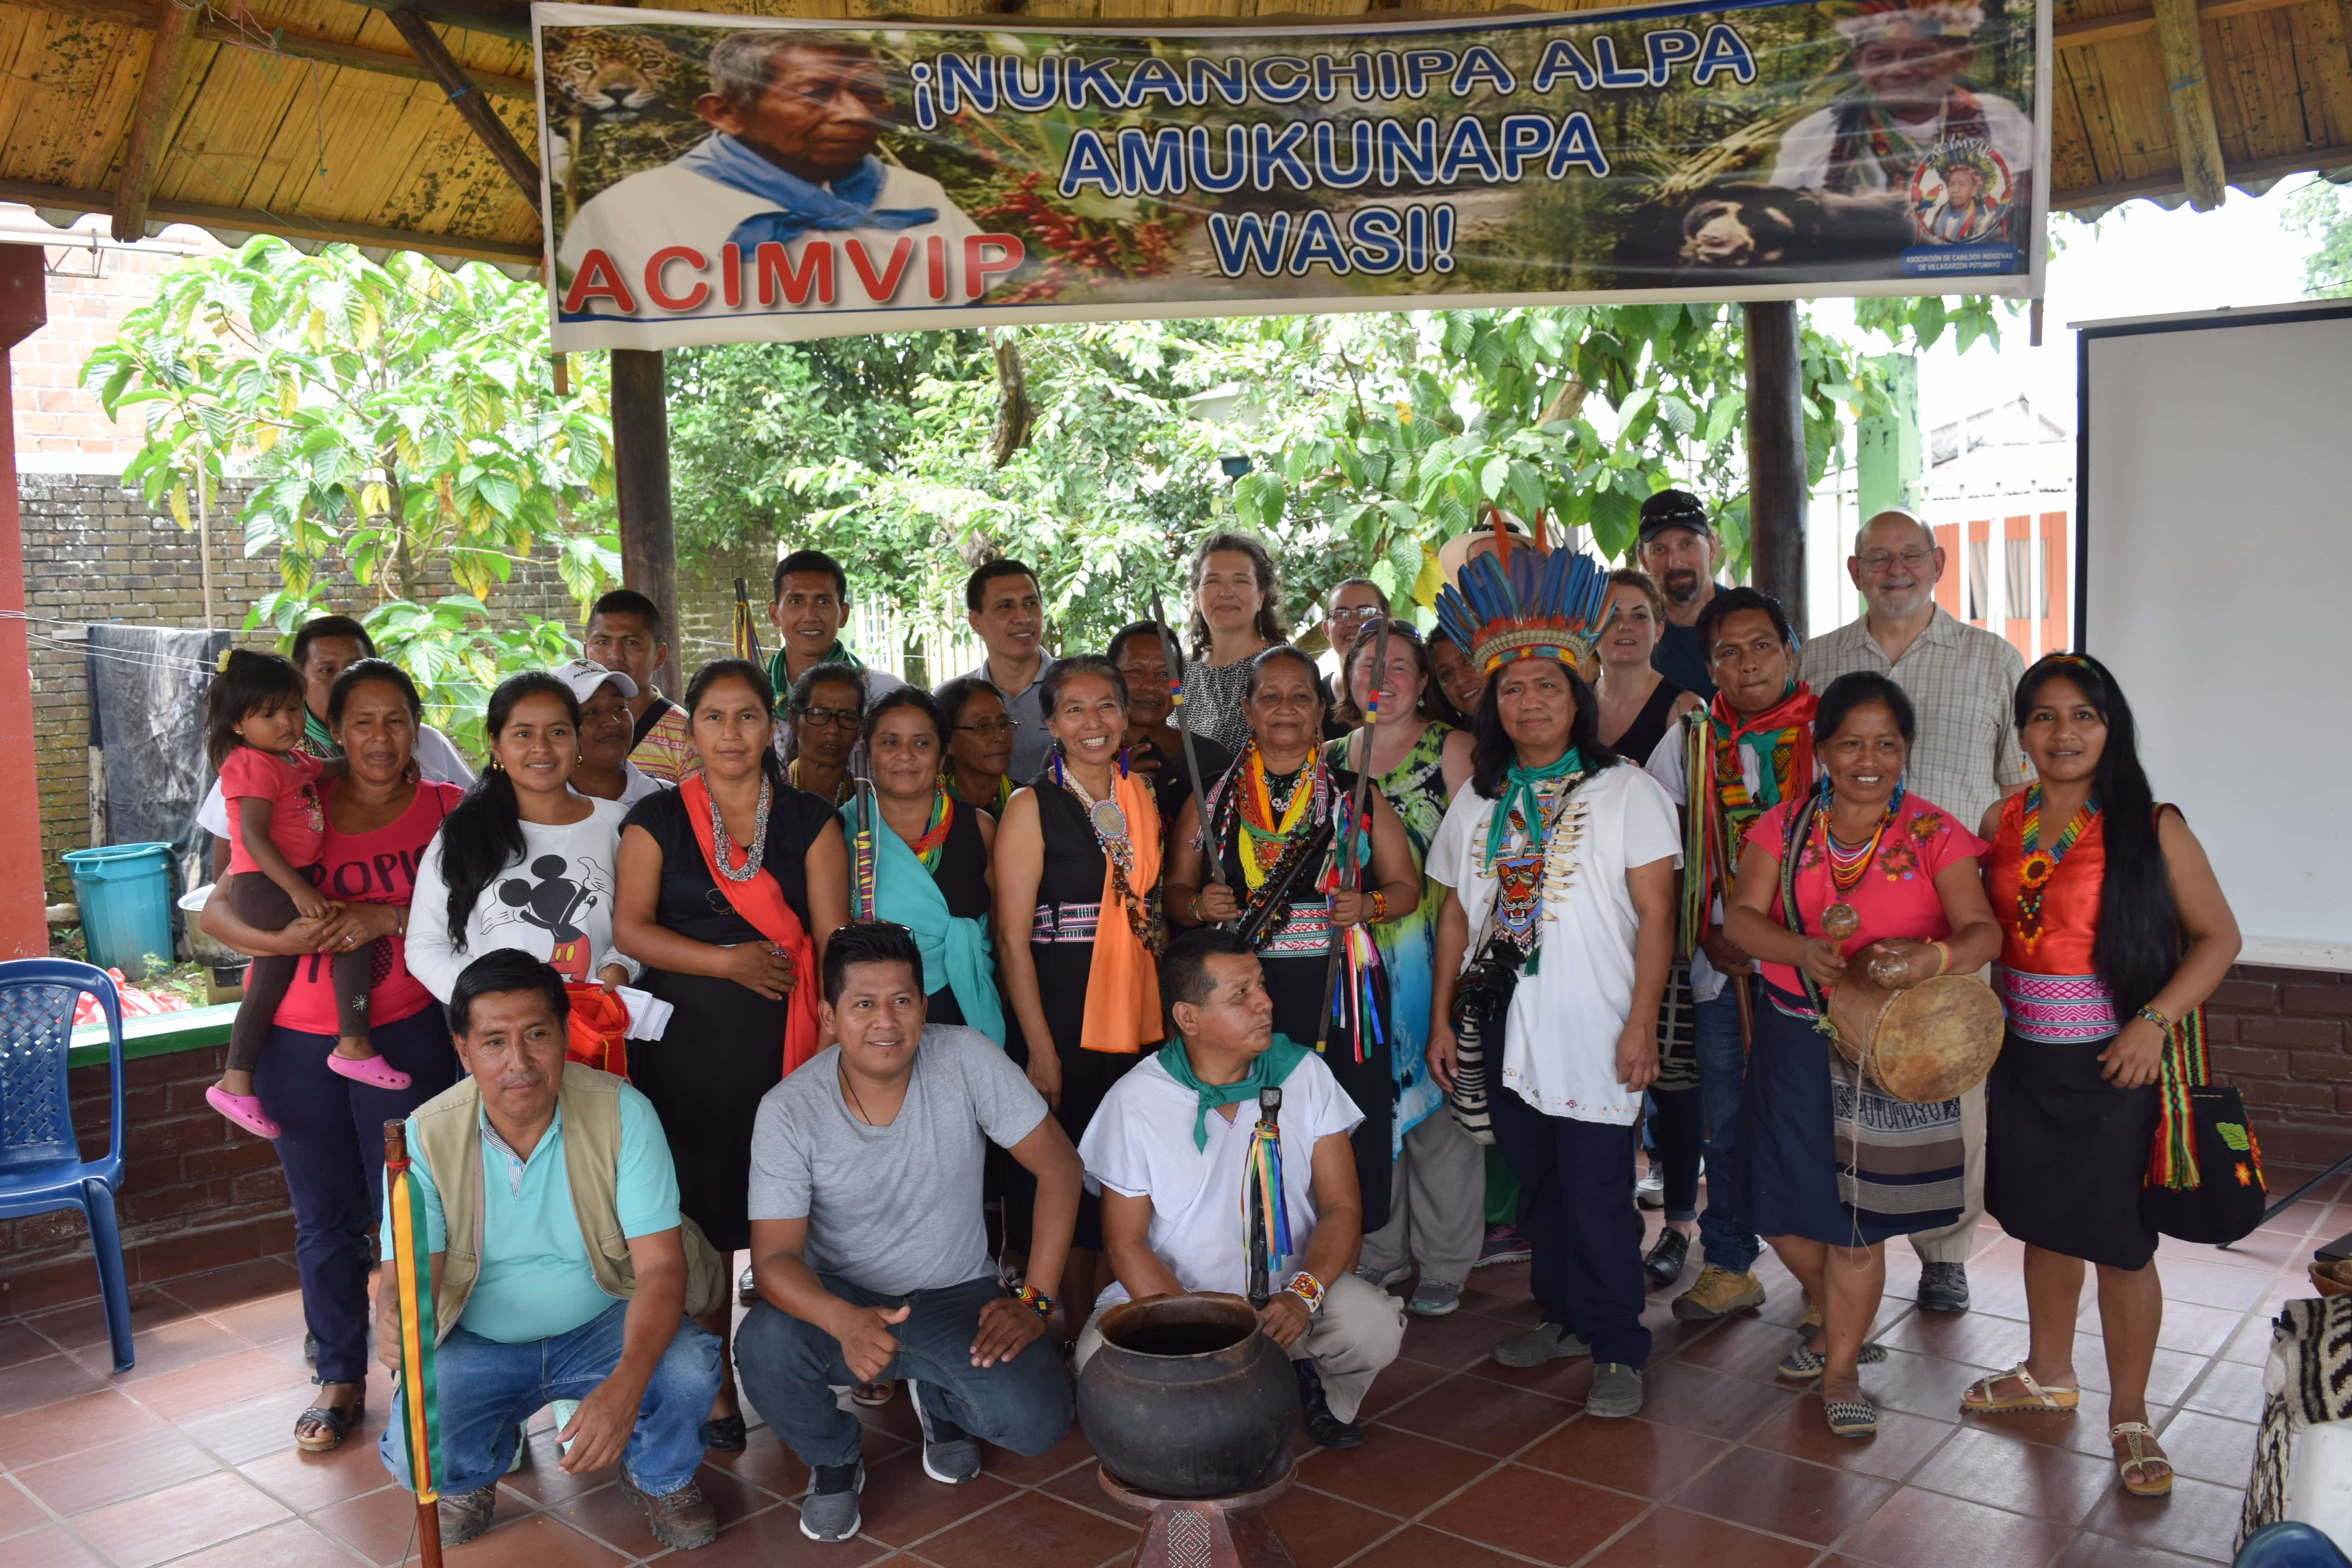 Colombia 2018: May peace not cost the lives of those who survived the war